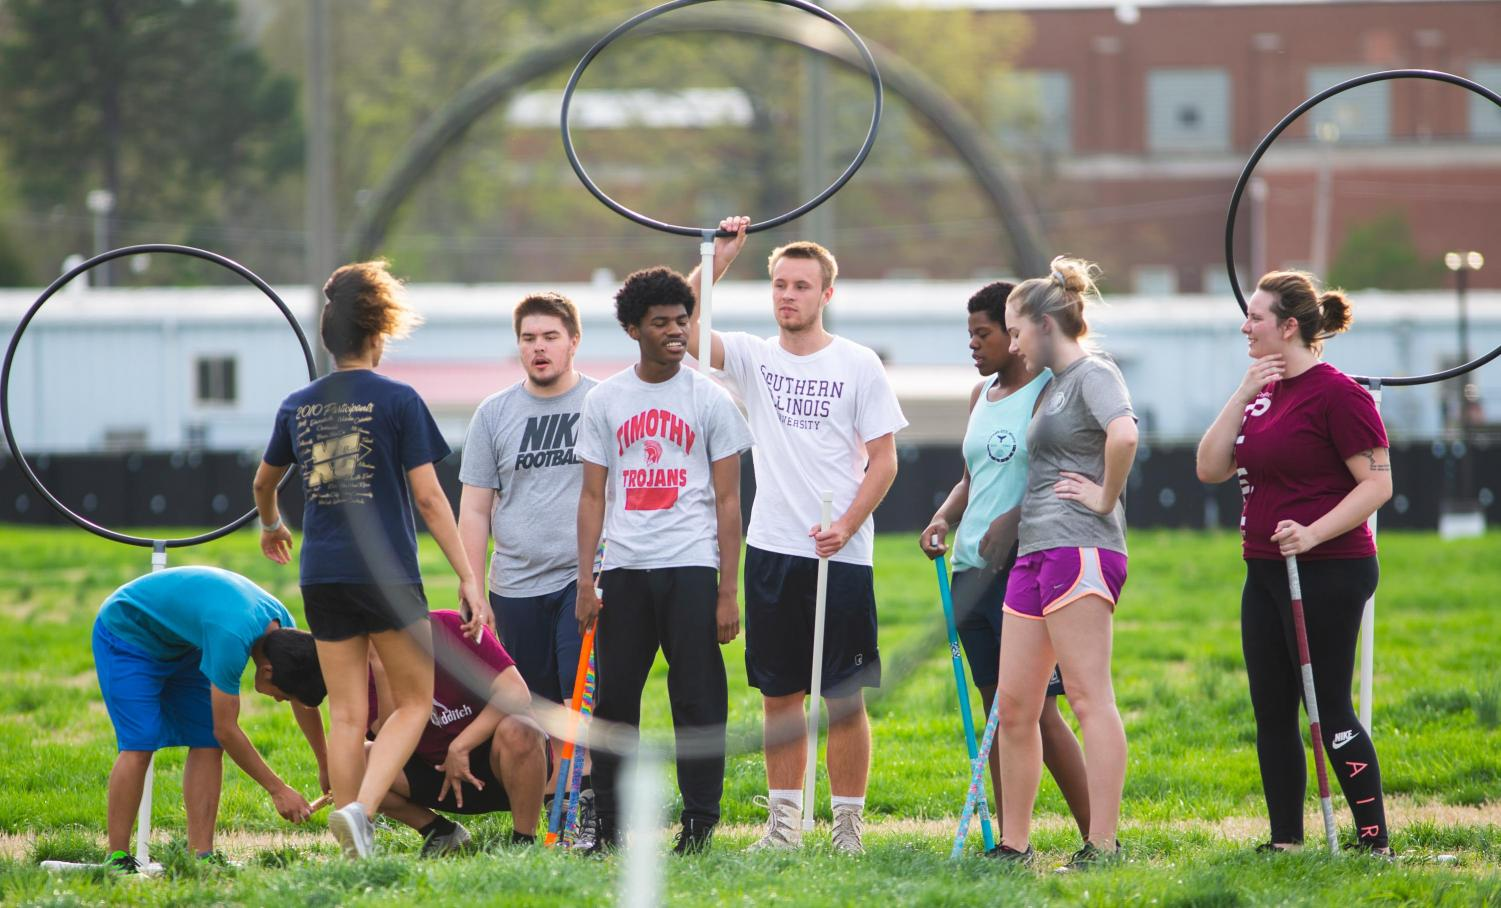 The SIU Quidditch team talks among themselves, on Thursday, April 12, 2019 during their last practice before nationals.